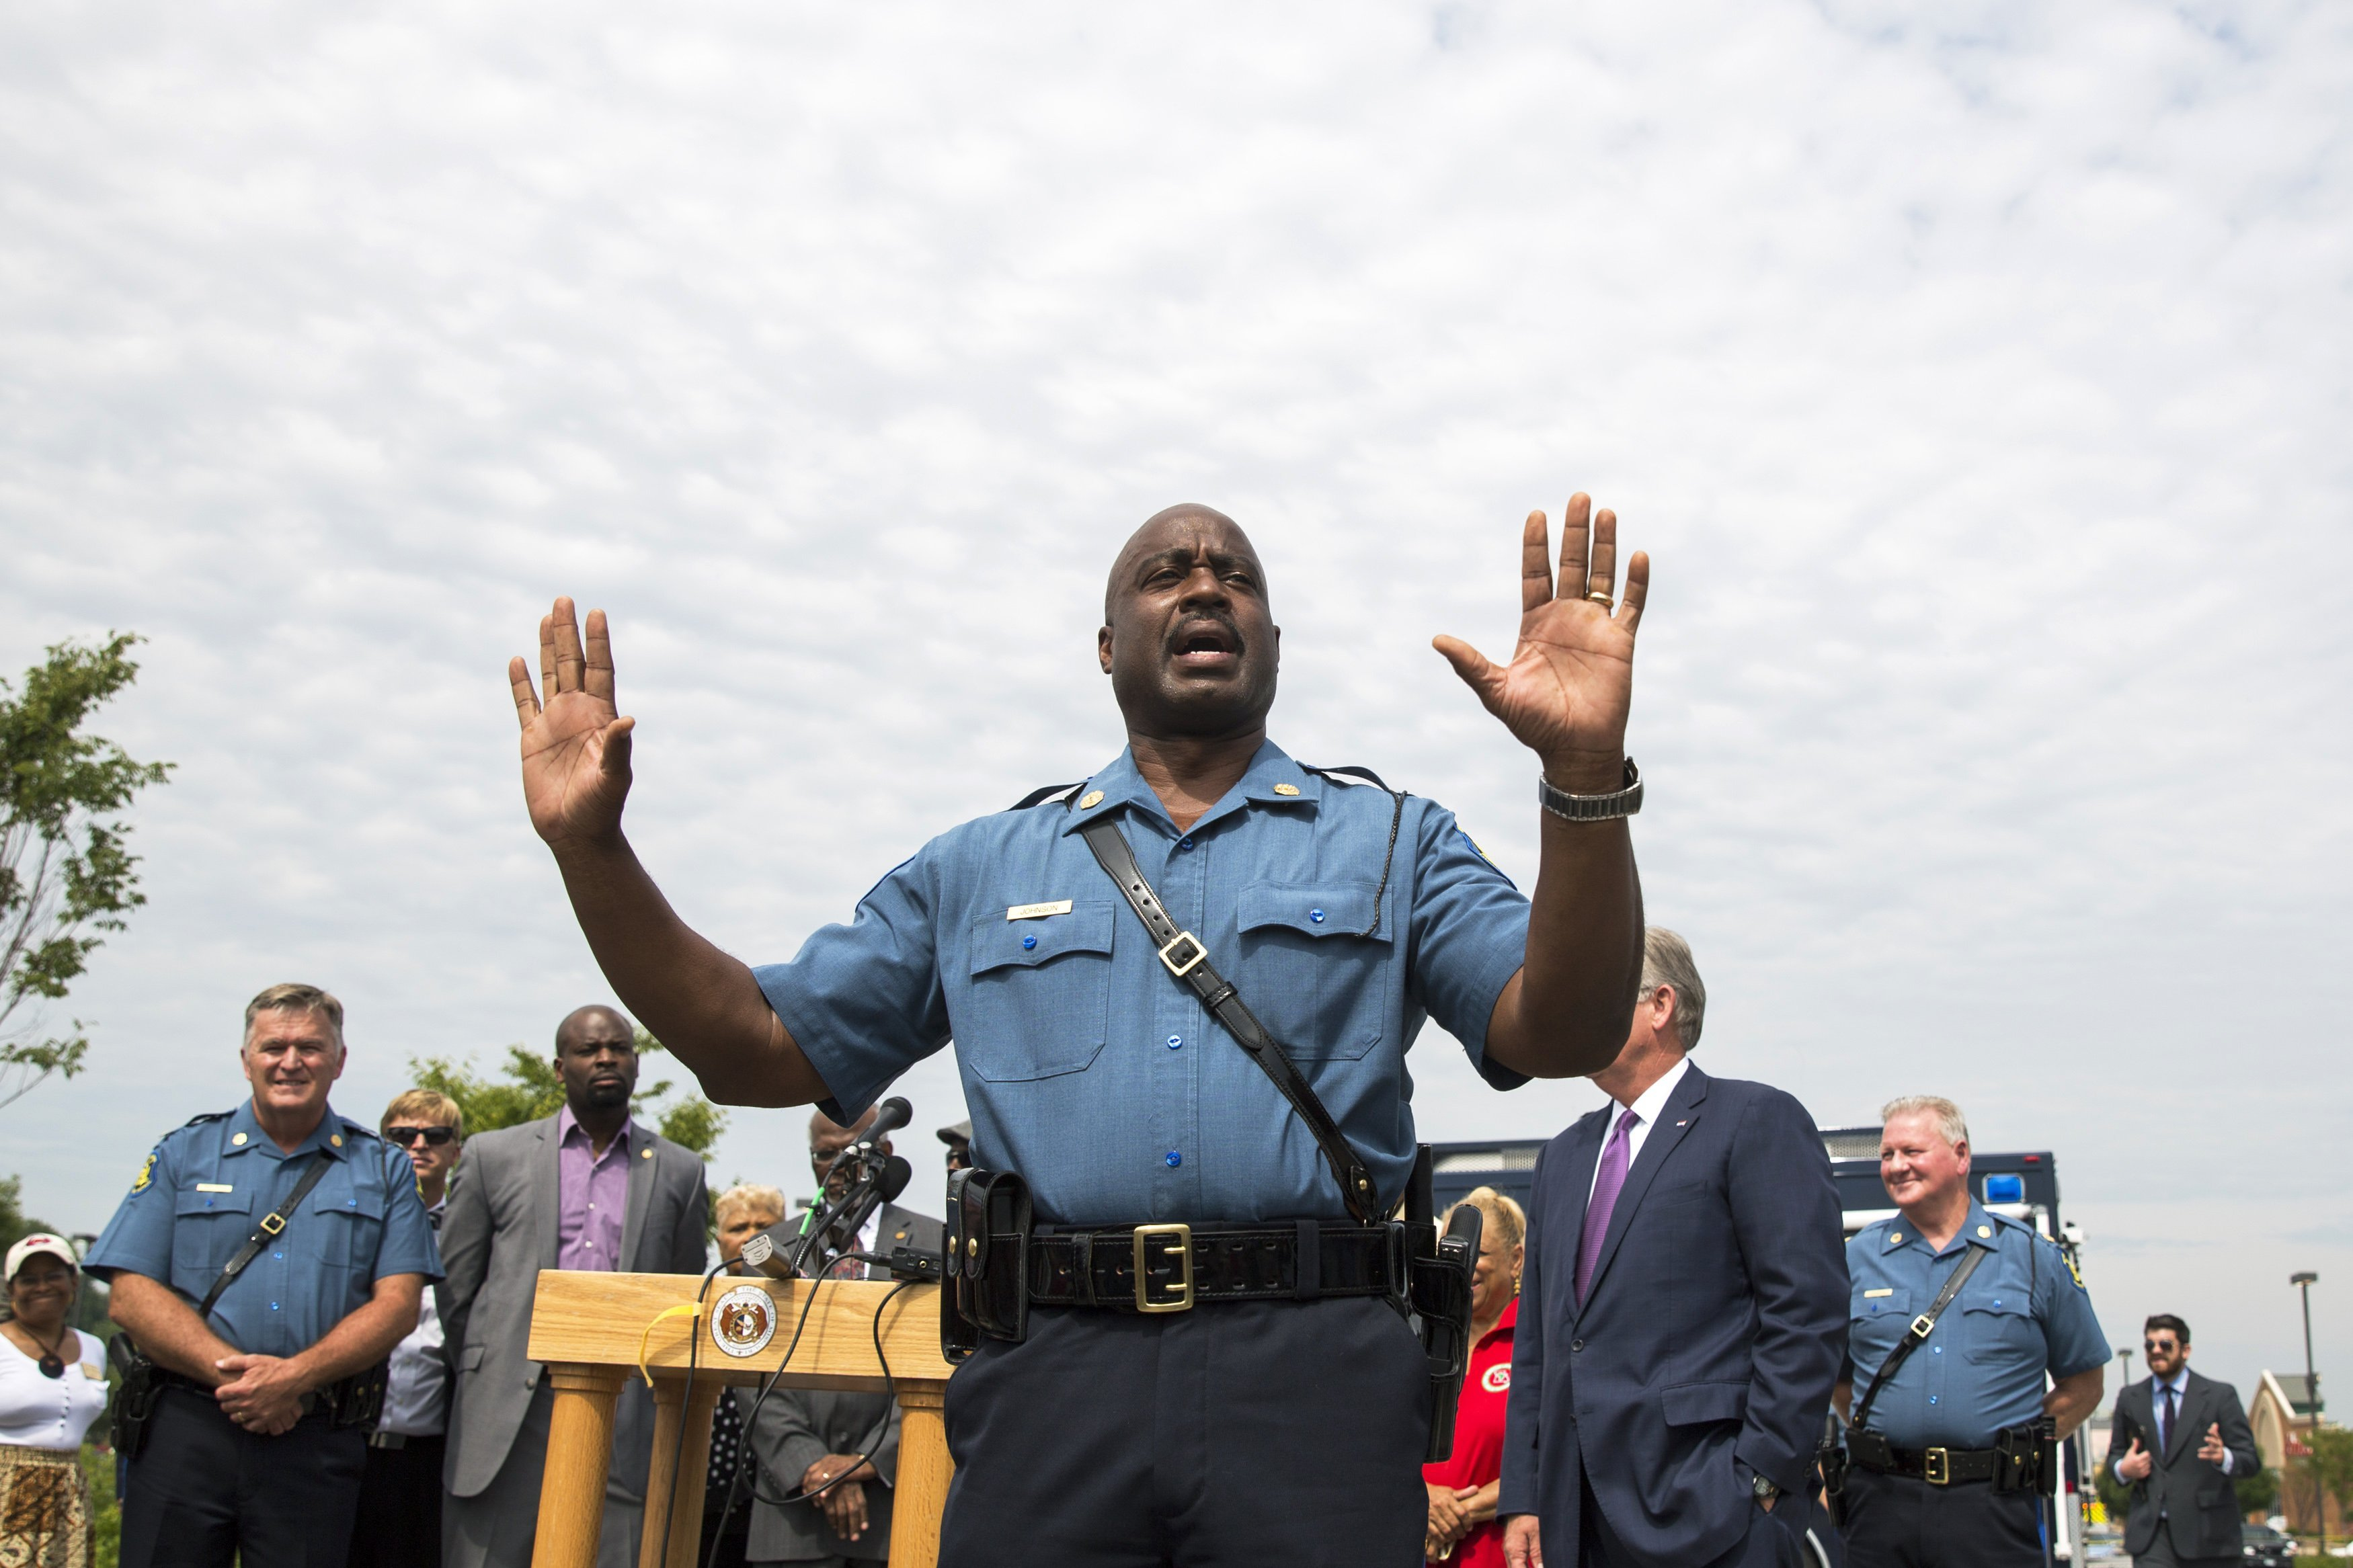 Captain Ron Johnson of the Missouri Highway Patrol addresses the media  in Ferguson on Aug. 15, 2014. Missouri Gov. Jay Nixon appointed NIxon to coordinate law enforcement's response after local departments were criticized for fanning the flames.